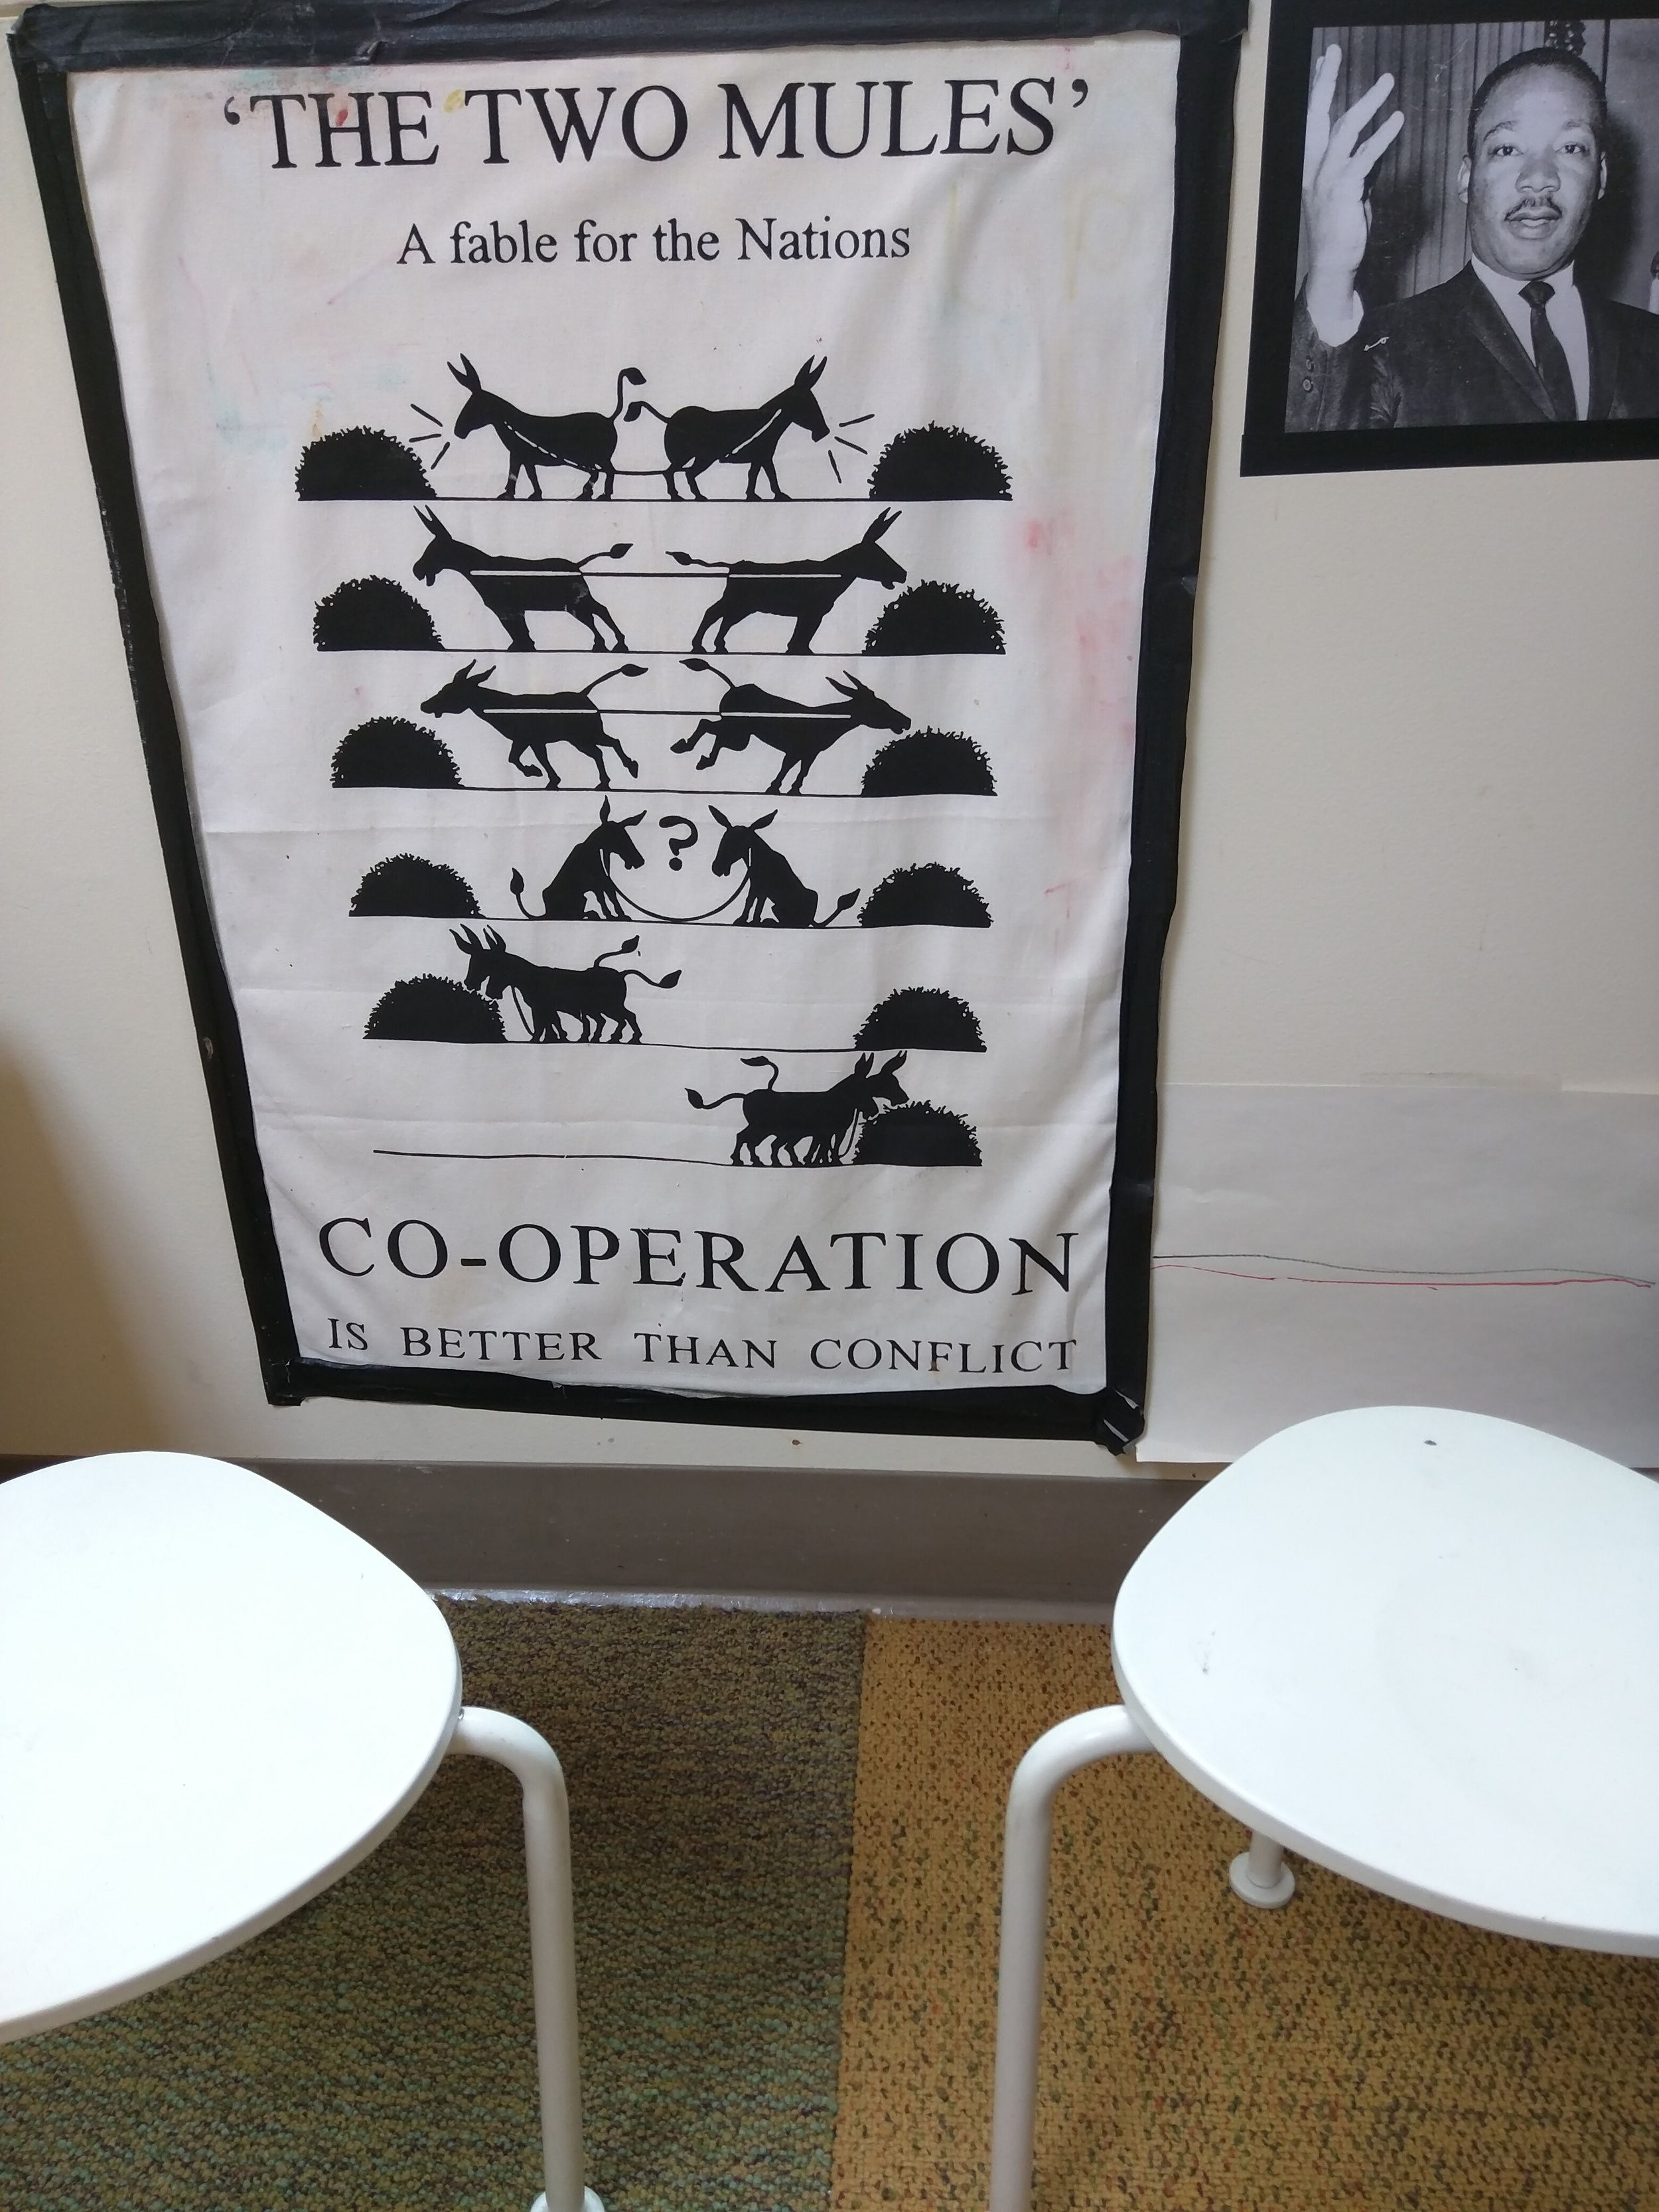 Teaching Peace with Elyse: Cooperation - Networking at the London Home of the Two Mules http://www.blog.discountschoolsupply.com/blog2/2016/8/17/teaching-peace-with-elyse-cooperation-networking-at-the-london-home-of-the-two-mules